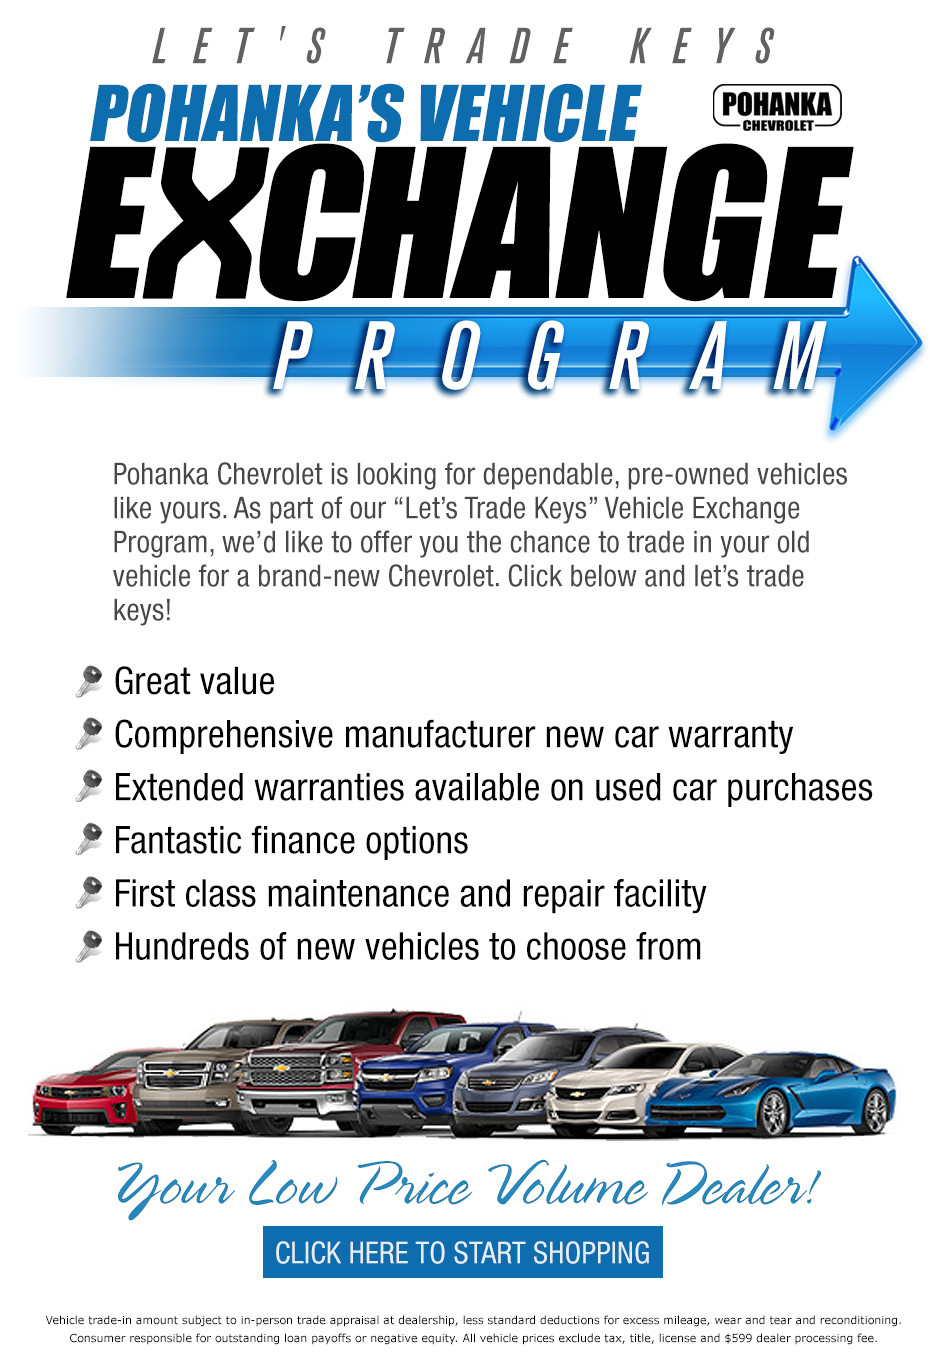 Pohanka Chevy Vehicle Exchange Program - Pohanka Chevrolet